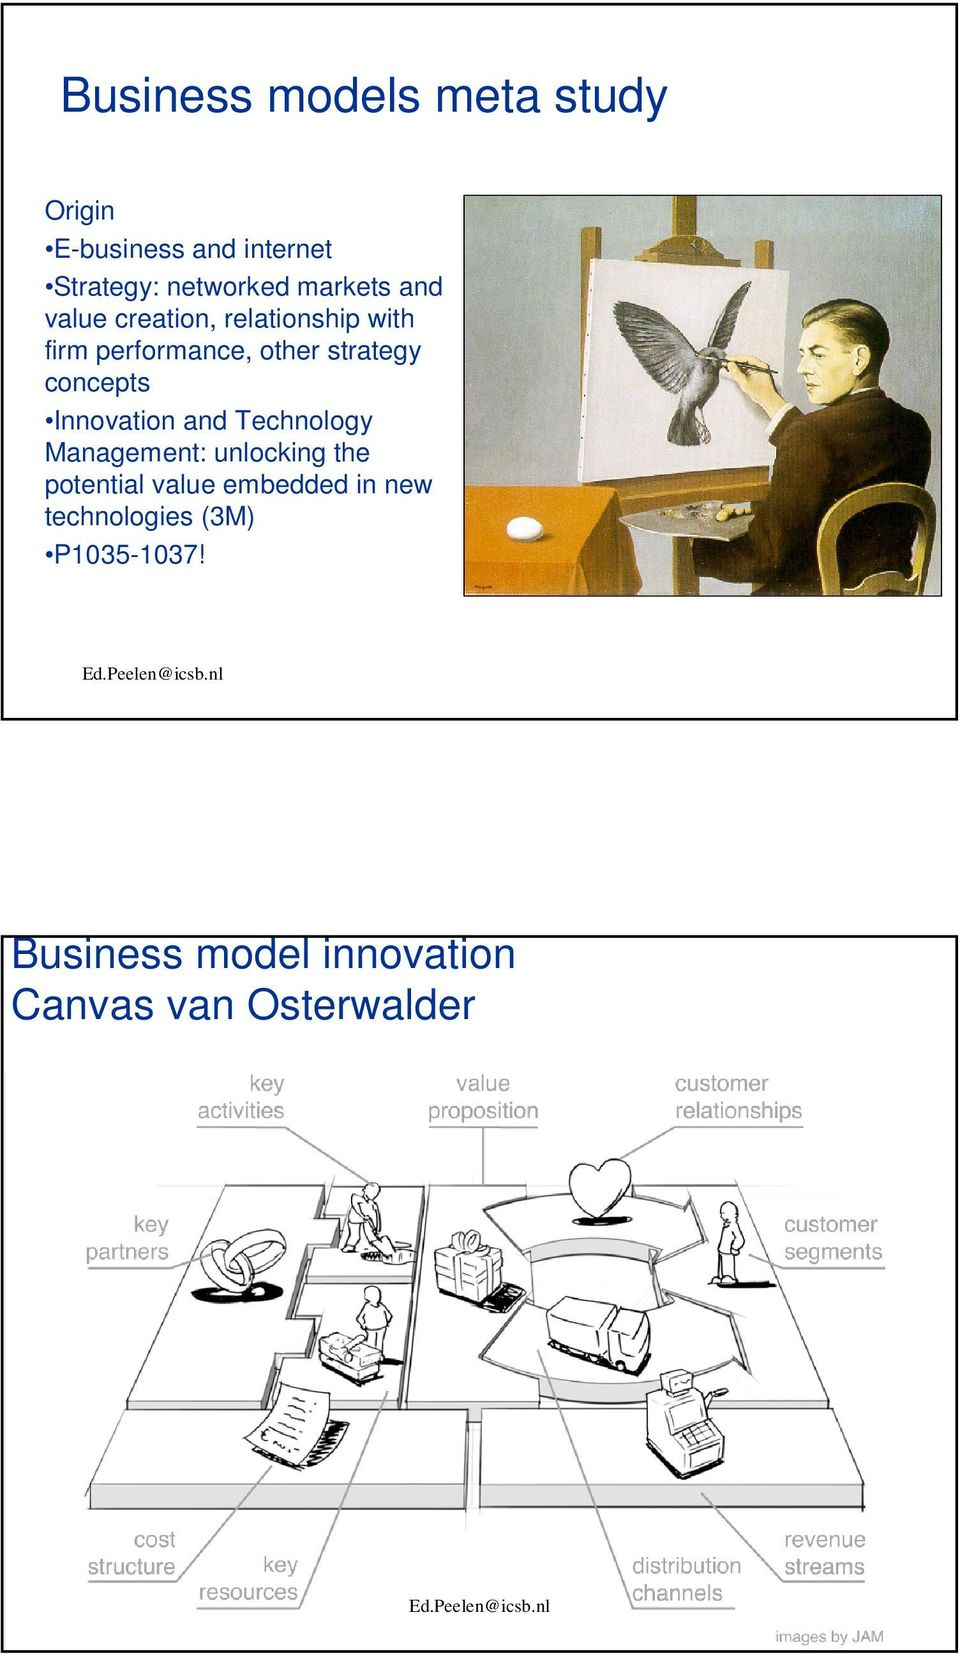 concepts Innovation and Technology Management: unlocking the potential value